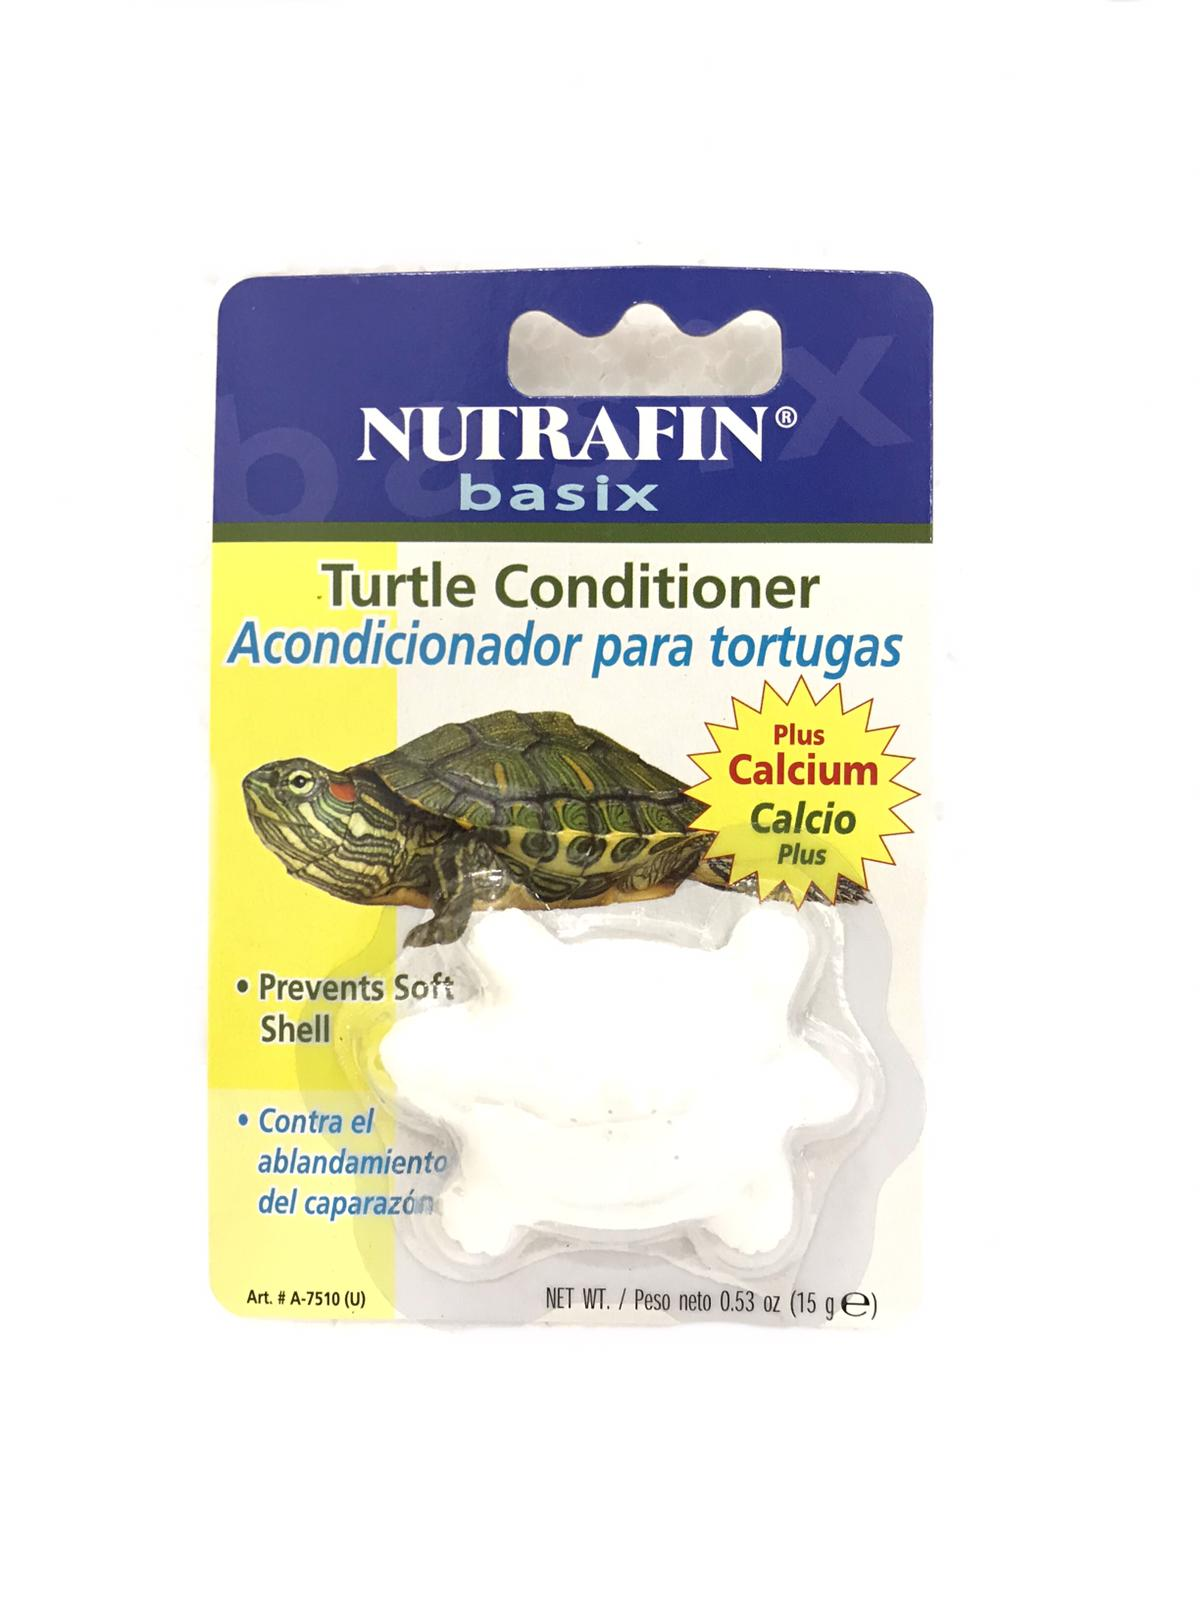 Hagen Nutrafin Basix Turtle Conditioner